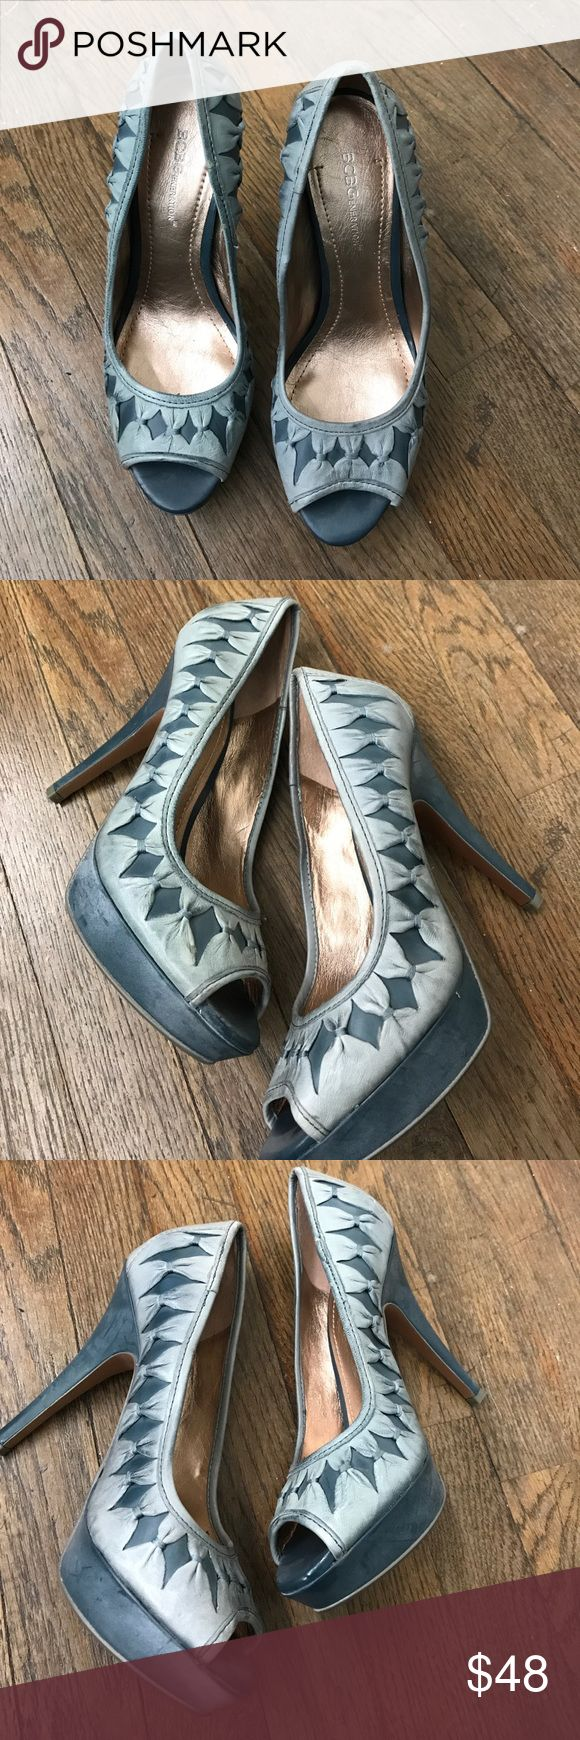 BCBGeneration Leather Peep toe pumps Blue stone washed denim looking leather peep toe pump 3 in denim color BCBGeneration Shoes Heels